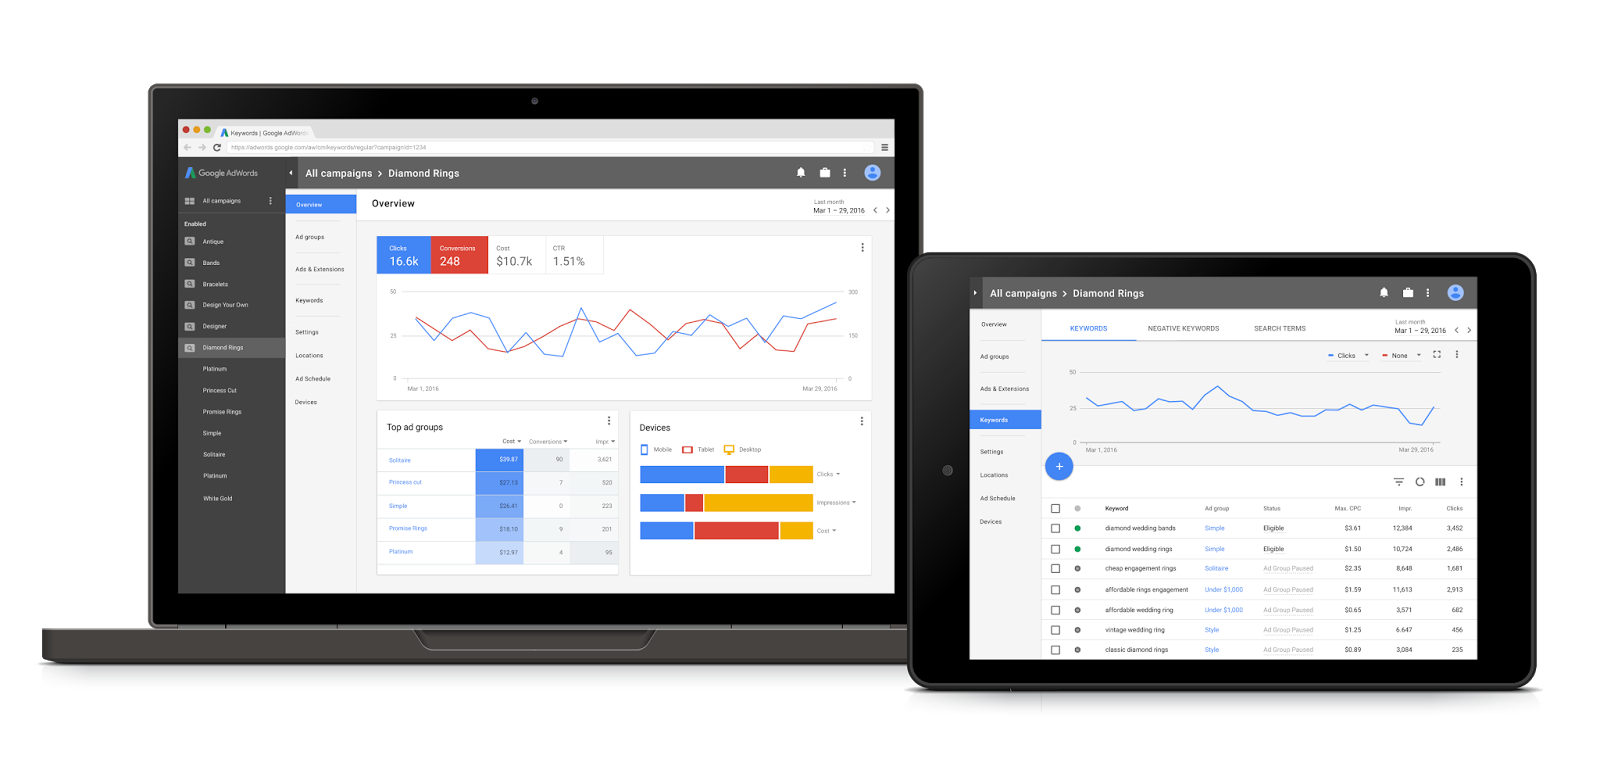 Acquisition de trafic : une nouvelle interface Google AdWords en 2017